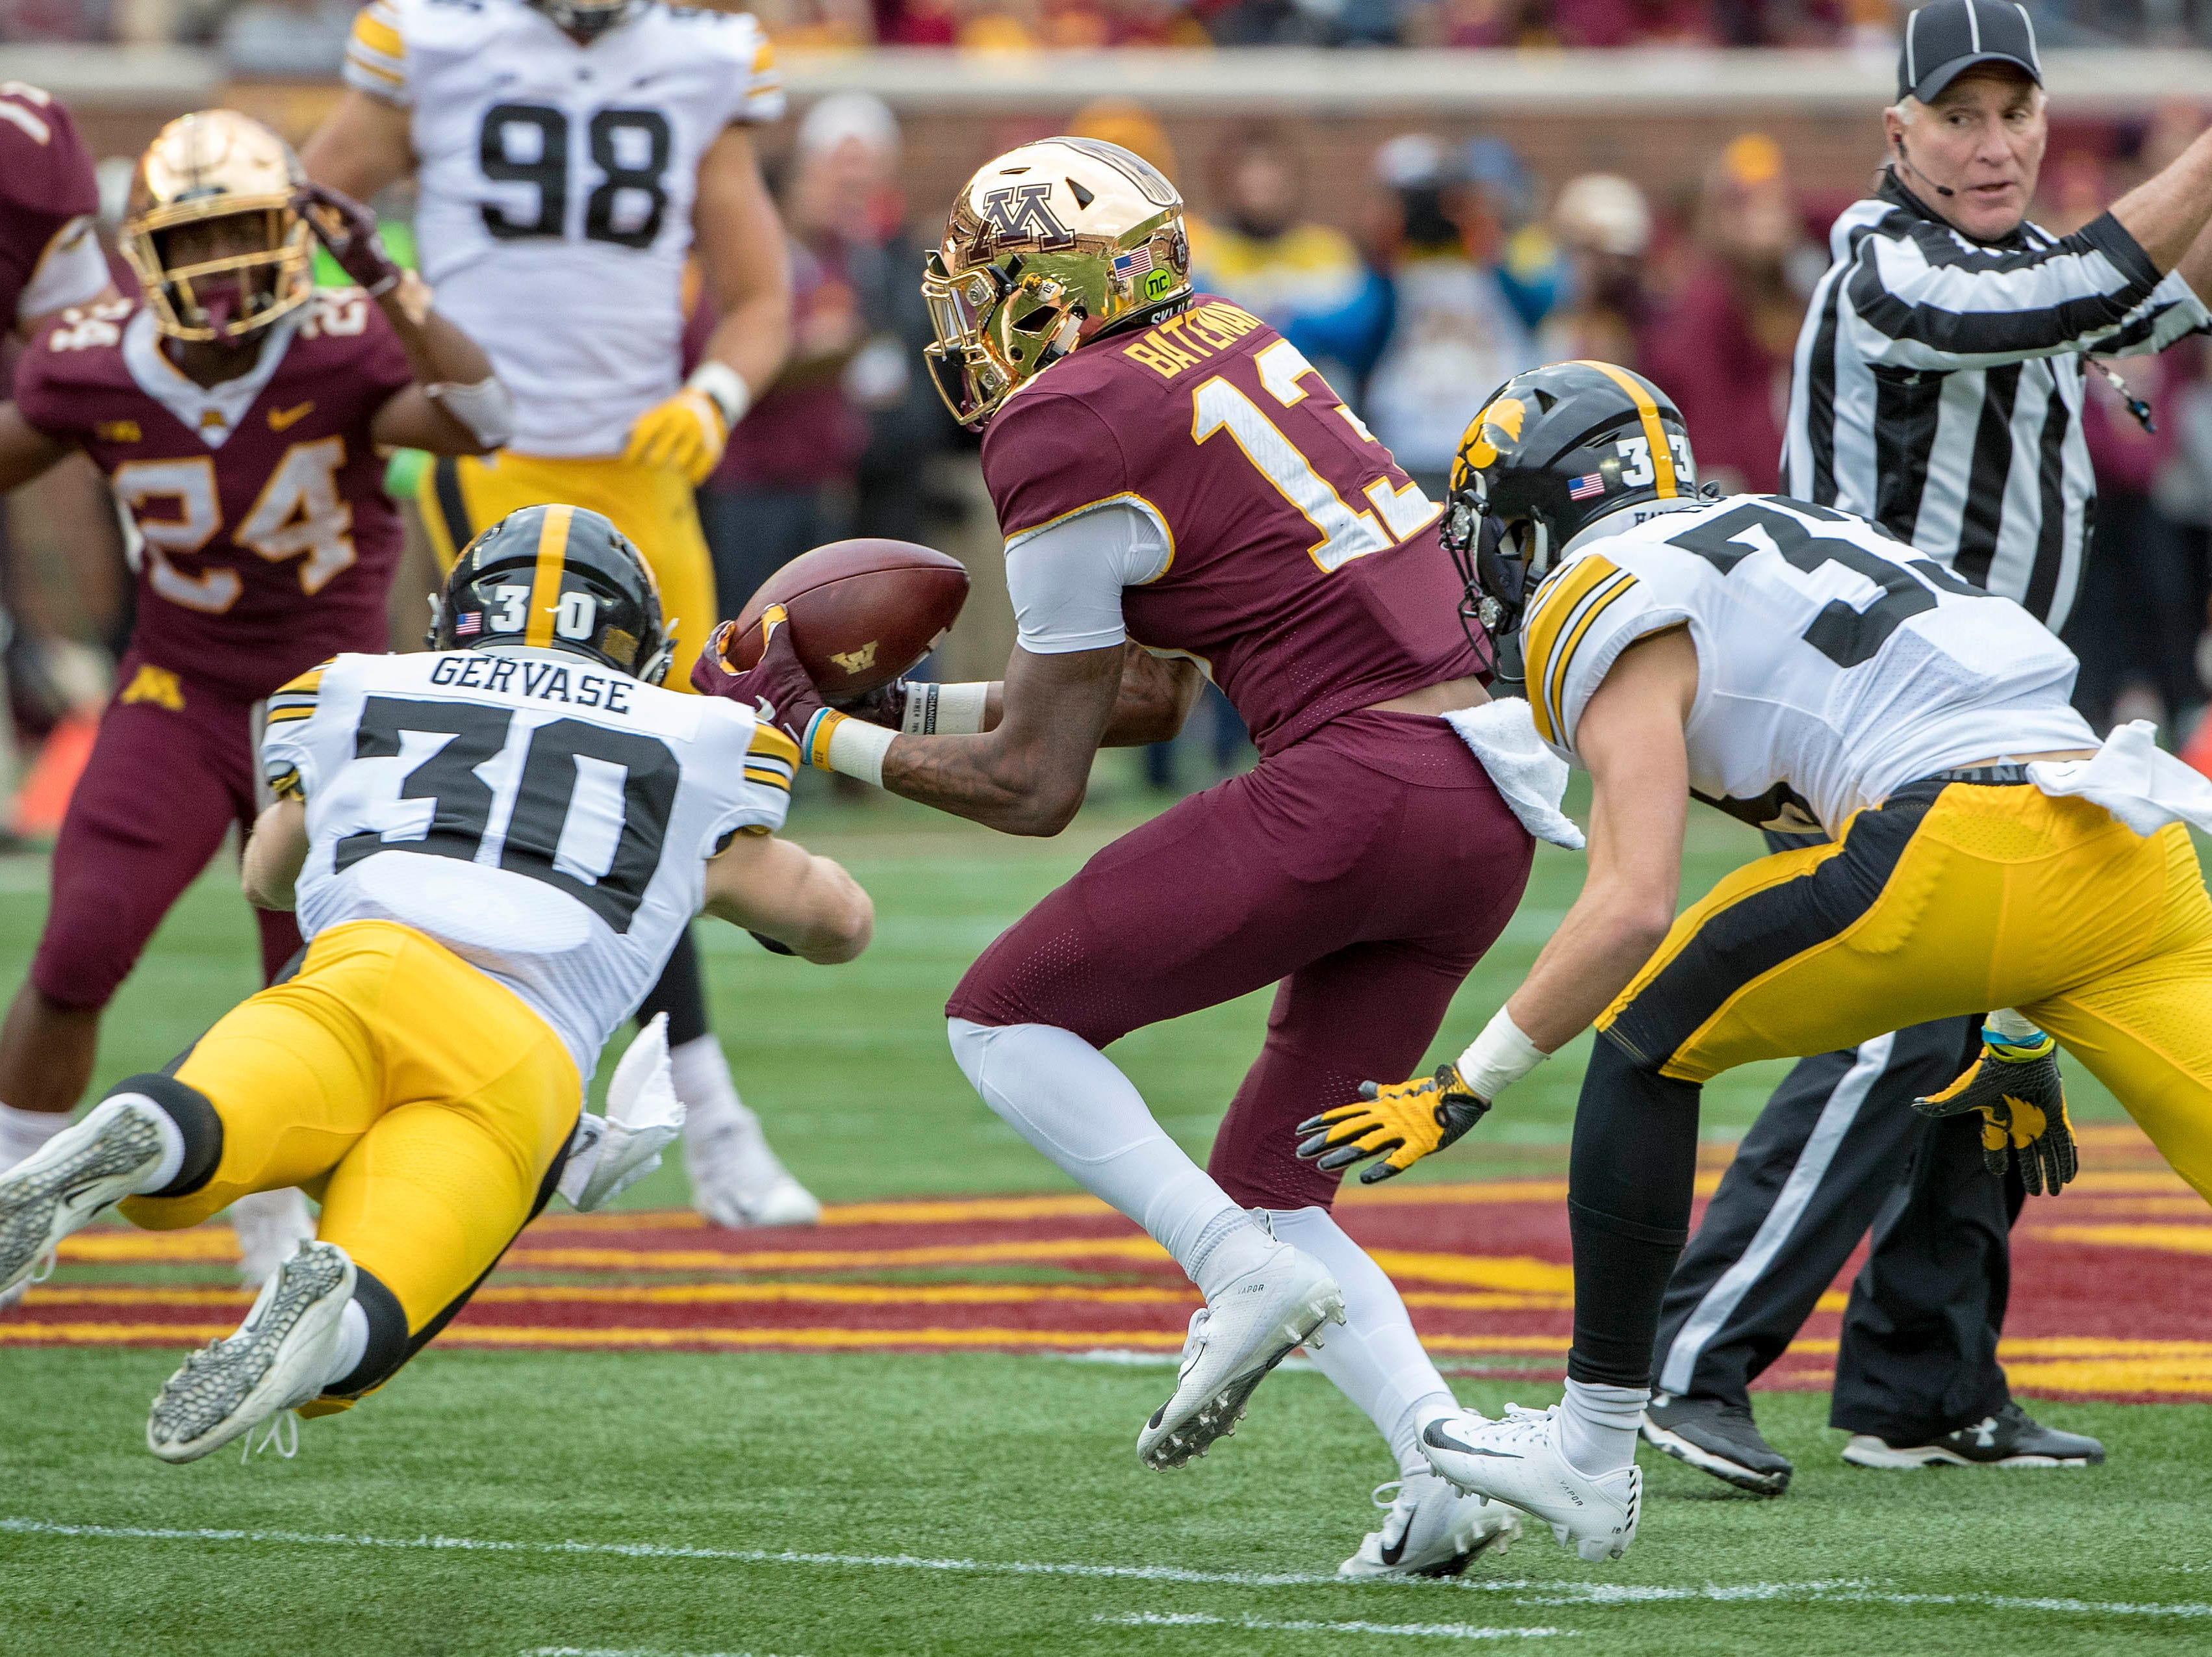 Oct 6, 2018; Minneapolis, MN, USA; Minnesota Golden Gophers wide receiver Rashod Bateman (13) catches a tipped pass in between defense from Iowa Hawkeyes defensive back Jake Gervase (30) and defensive back Riley Moss (33) in the first half at TCF Bank Stadium. Mandatory Credit: Jesse Johnson-USA TODAY Sports